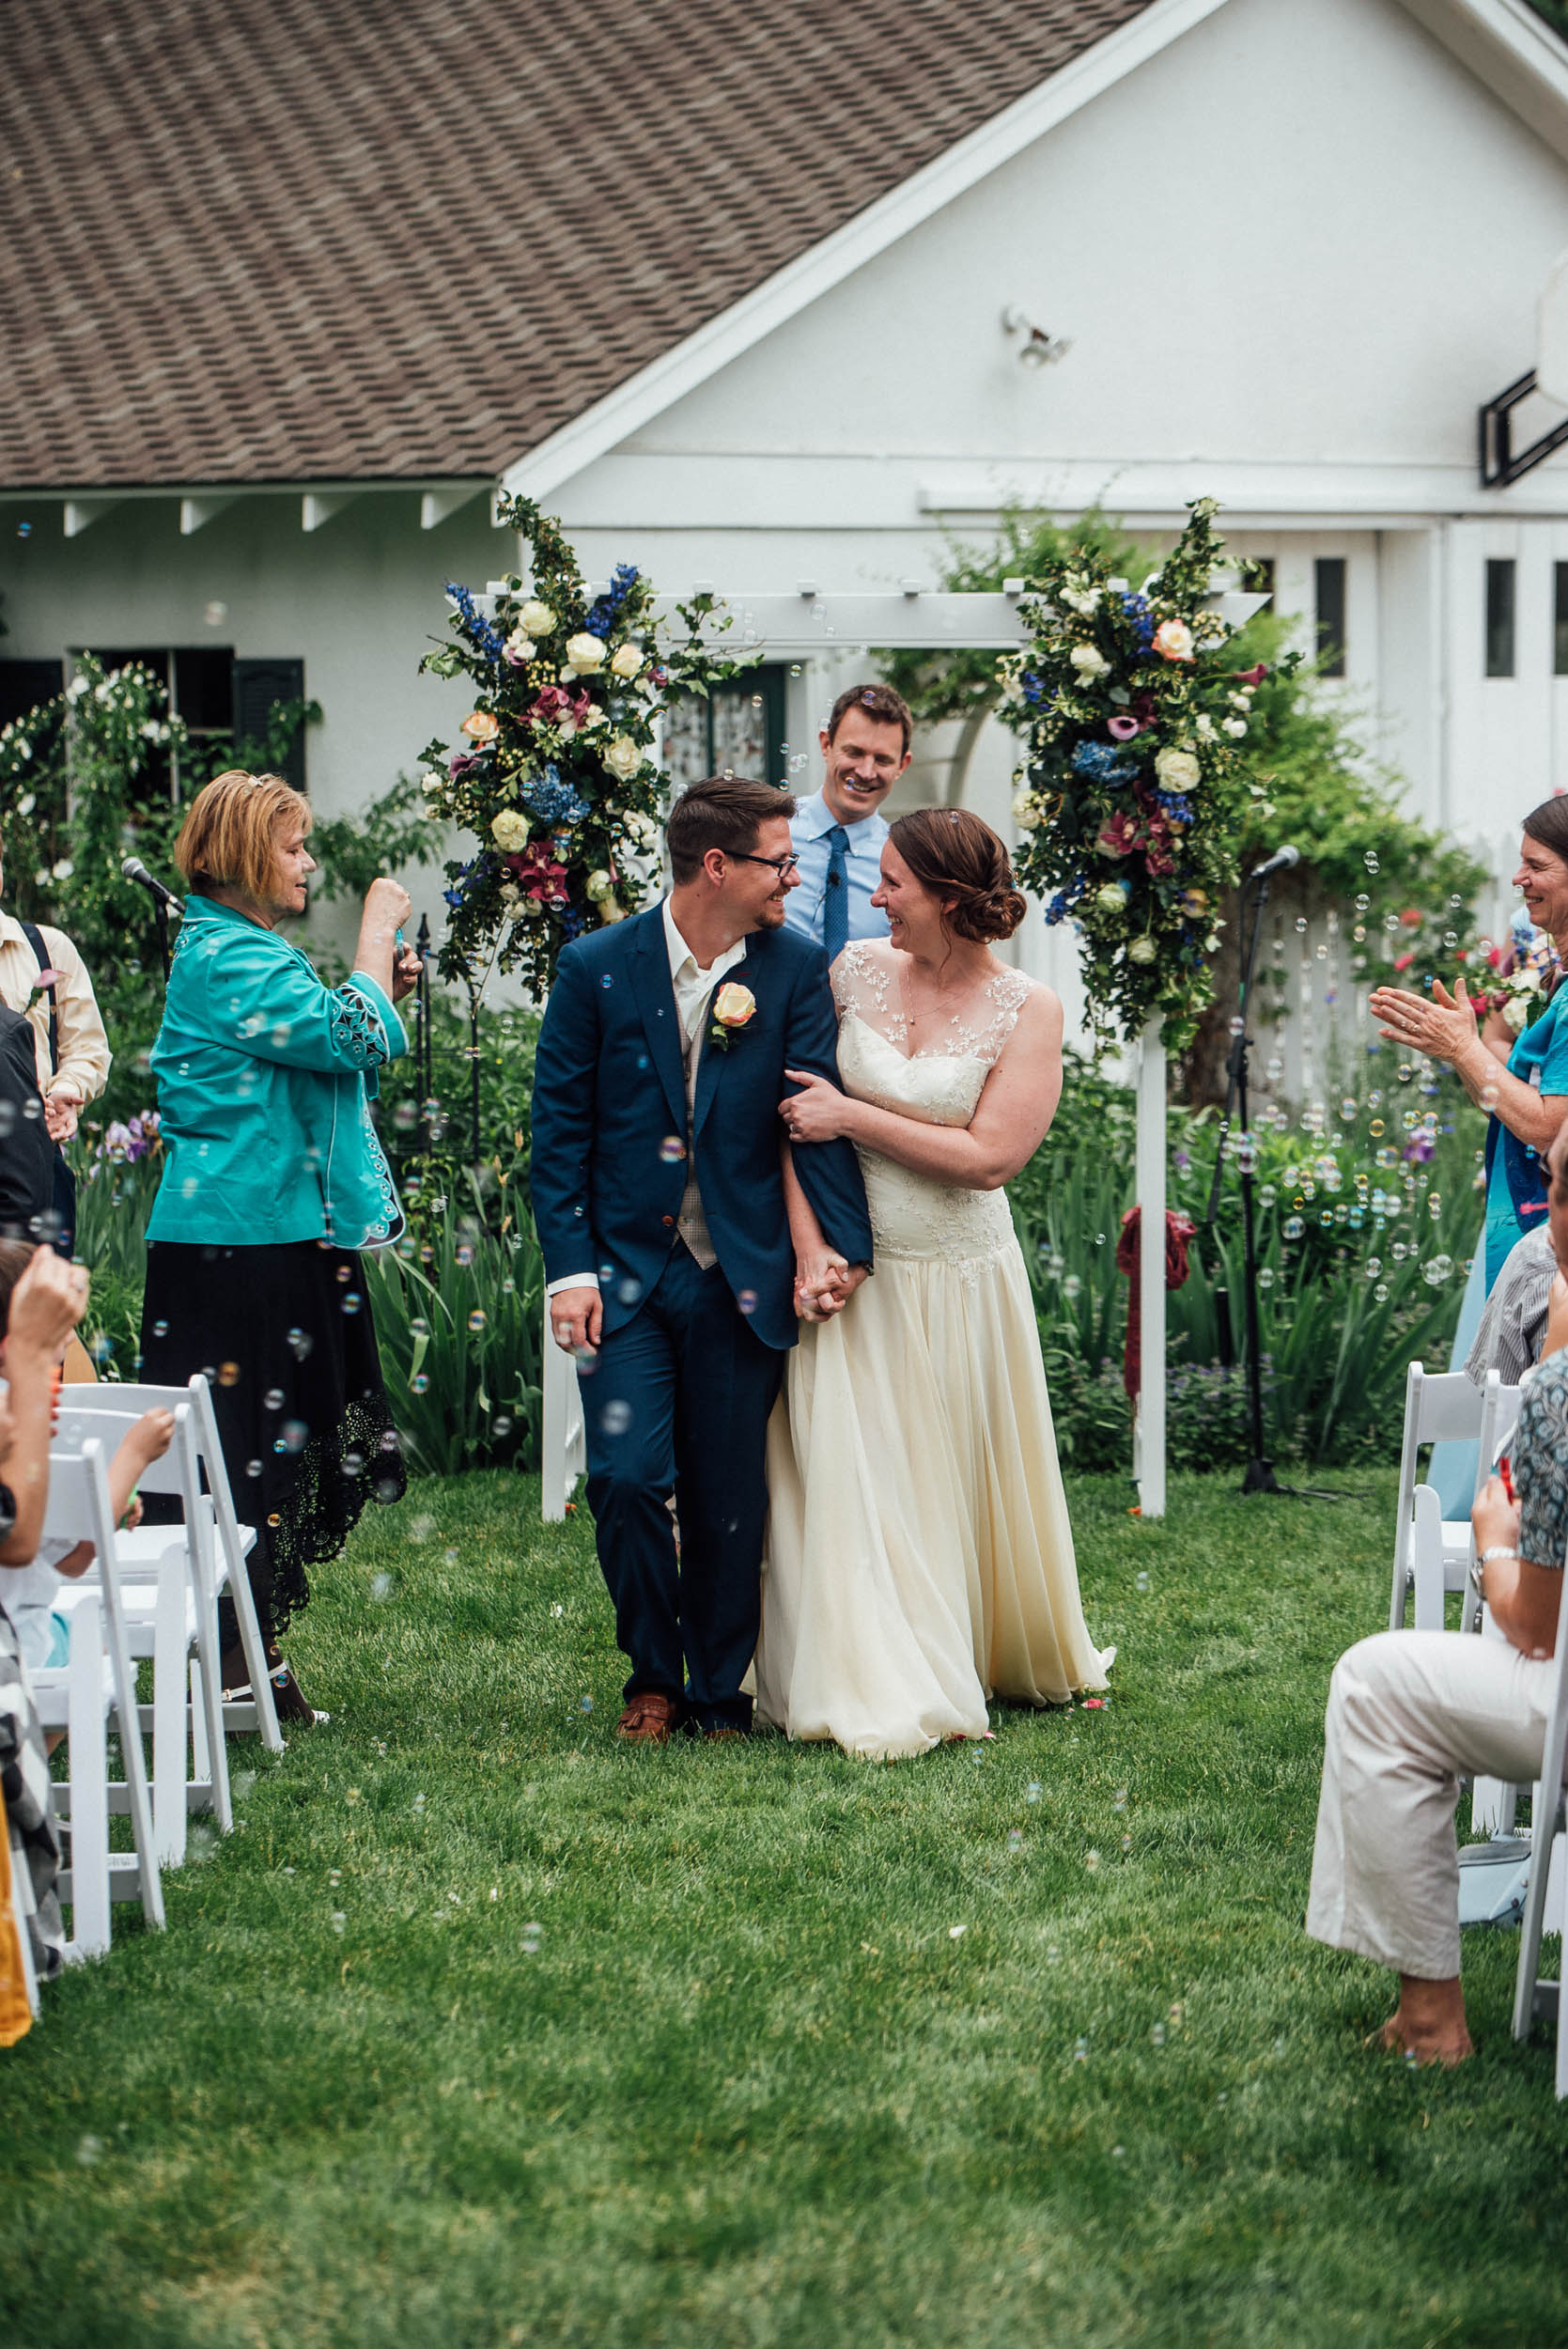 Colorado-Backyard-Wedding-Photographer-48.jpg